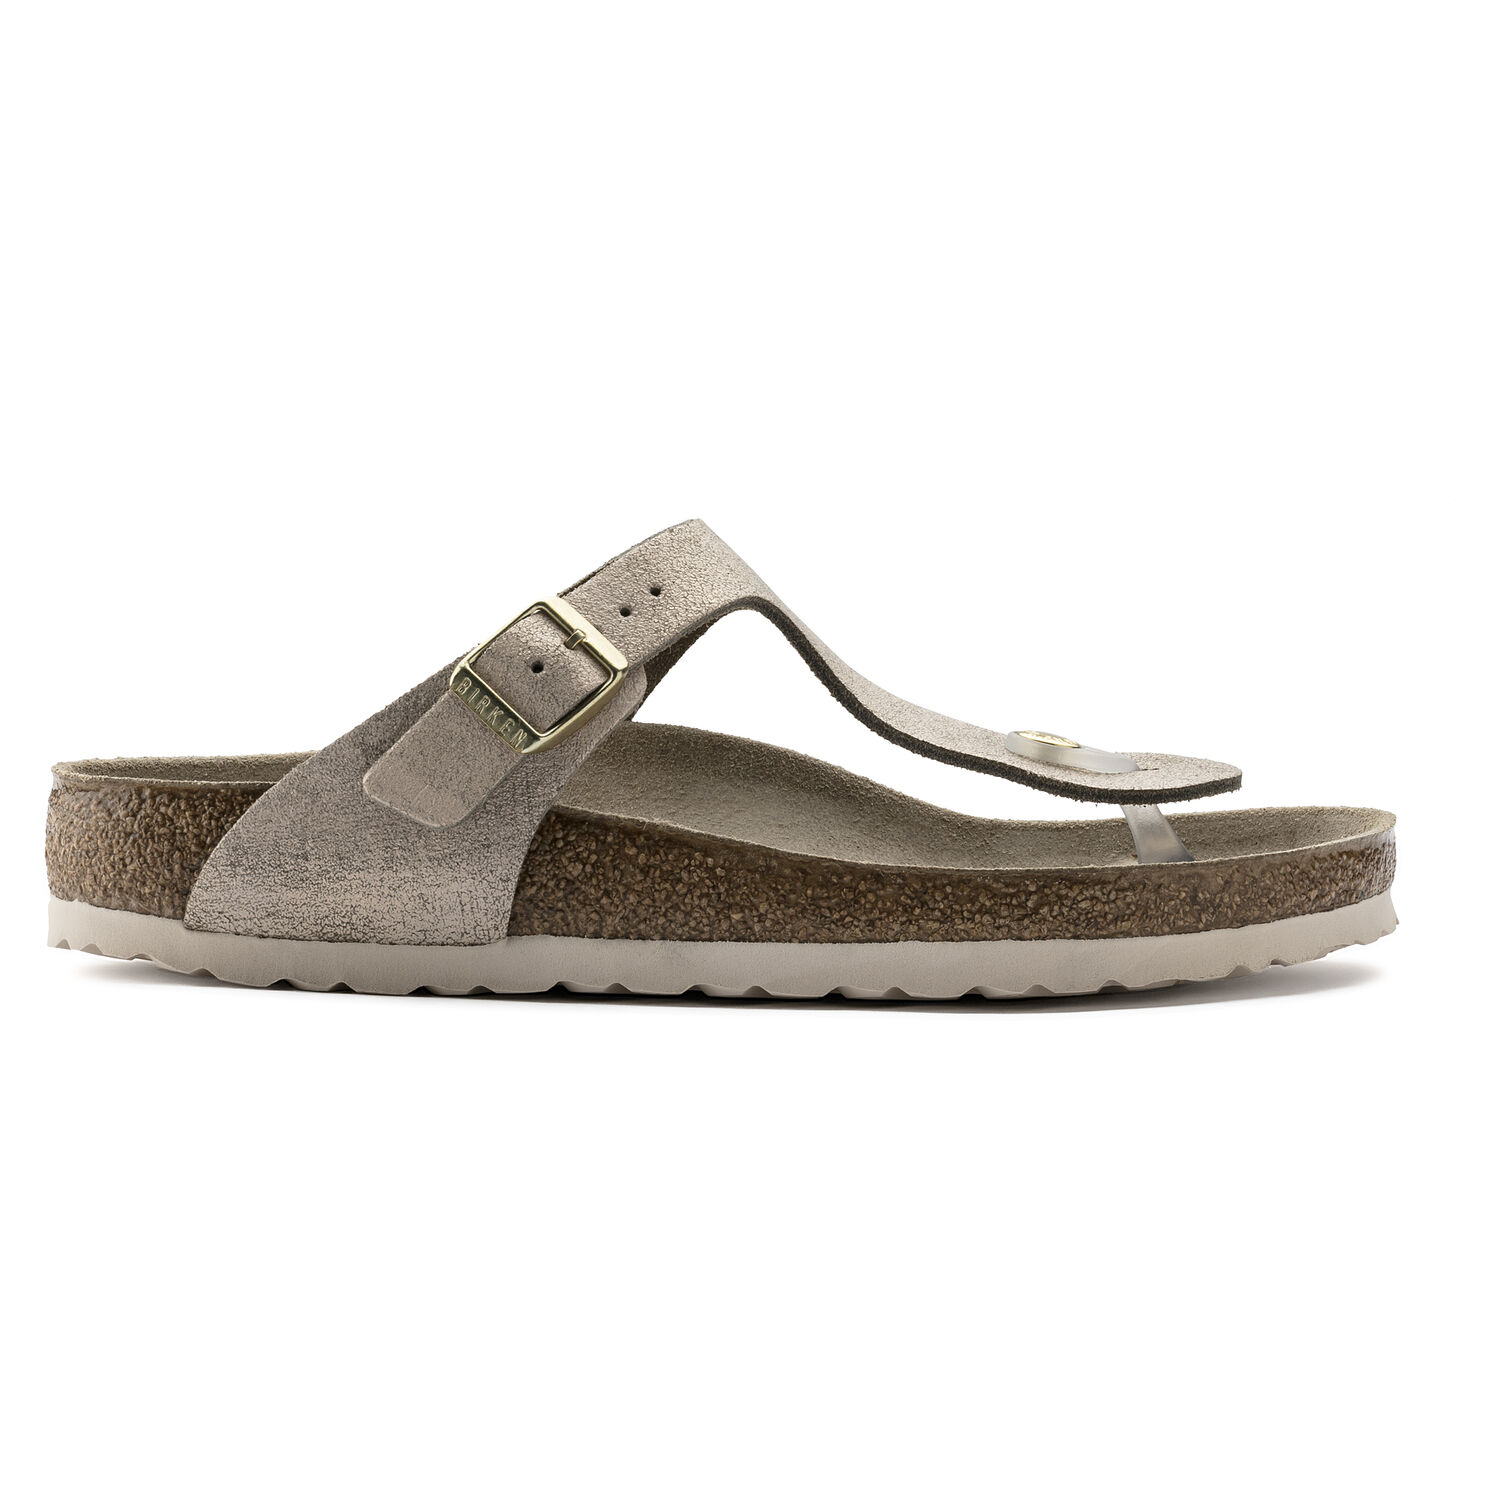 Gizeh Suede Leather